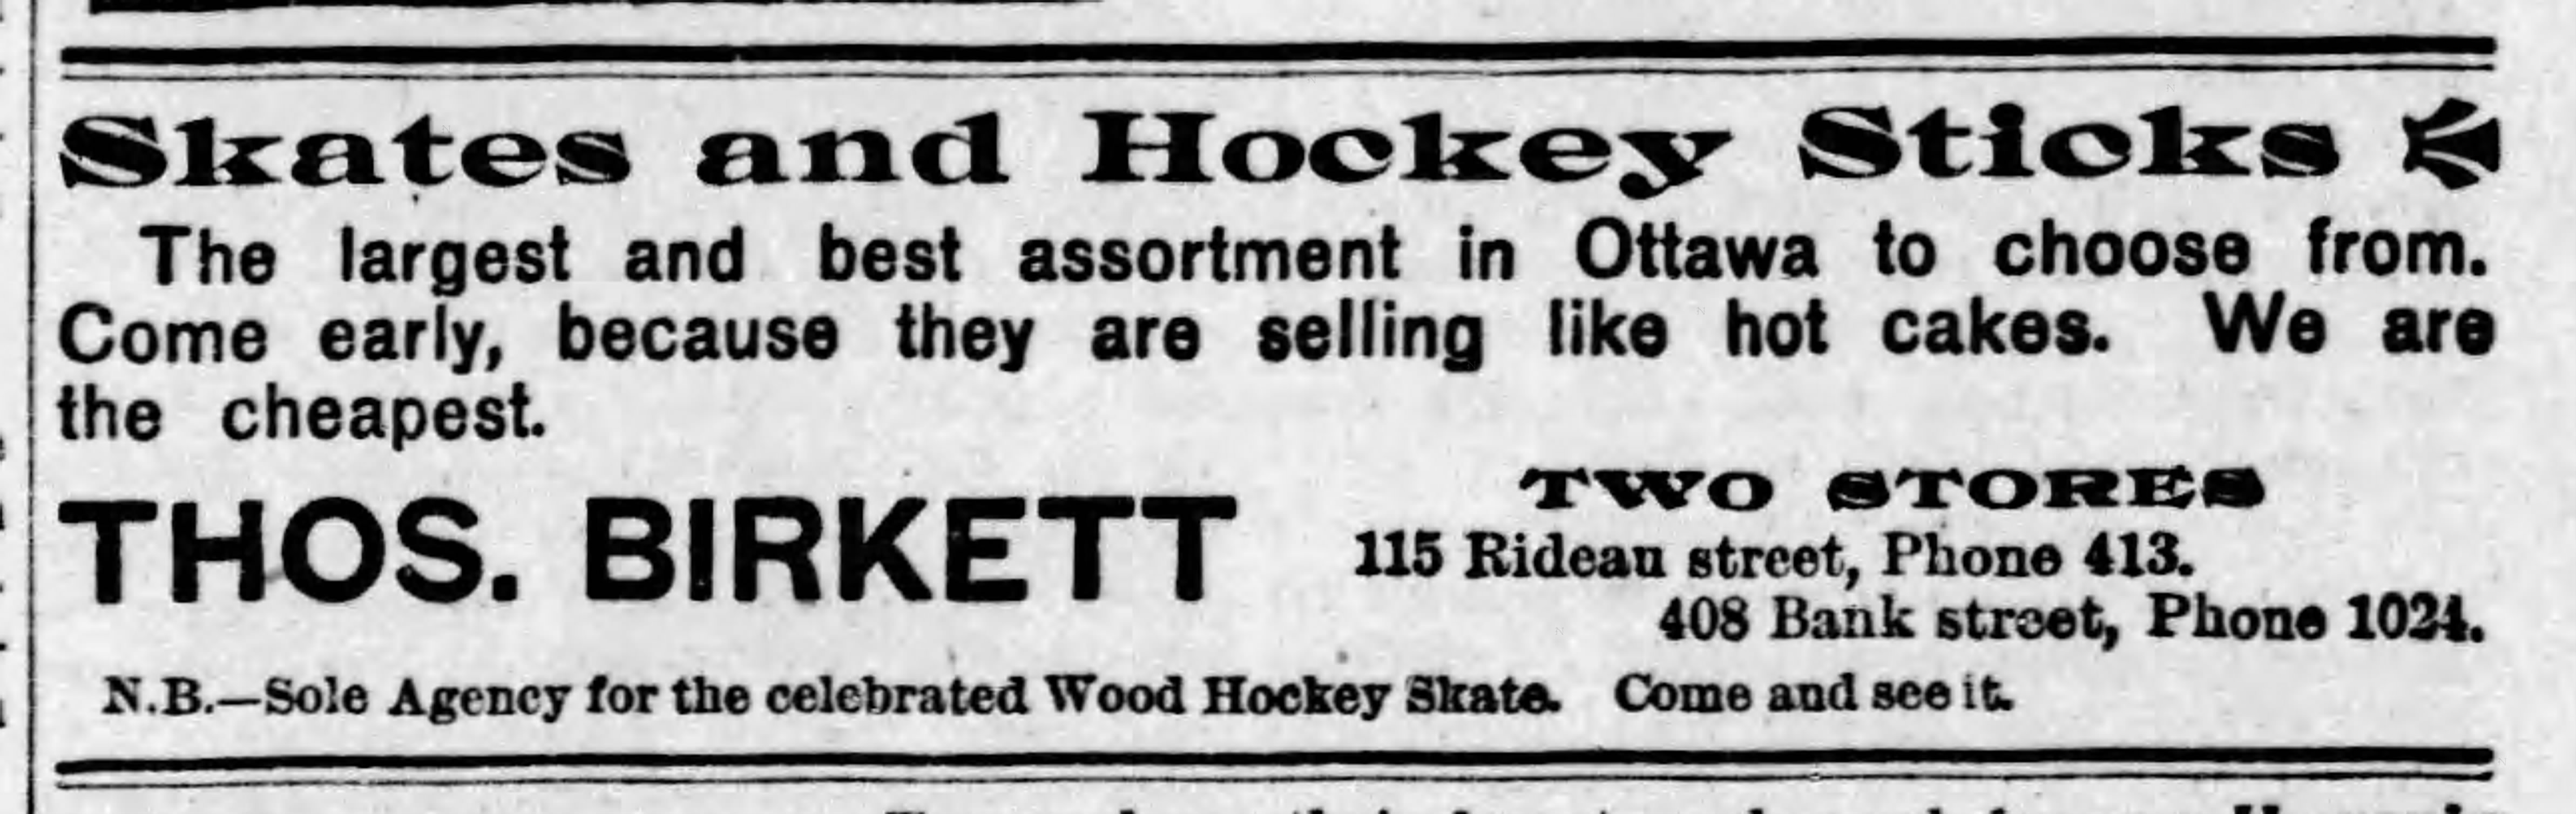 A black and white Thos. Birkett ad for skates in a 1898 newspaper